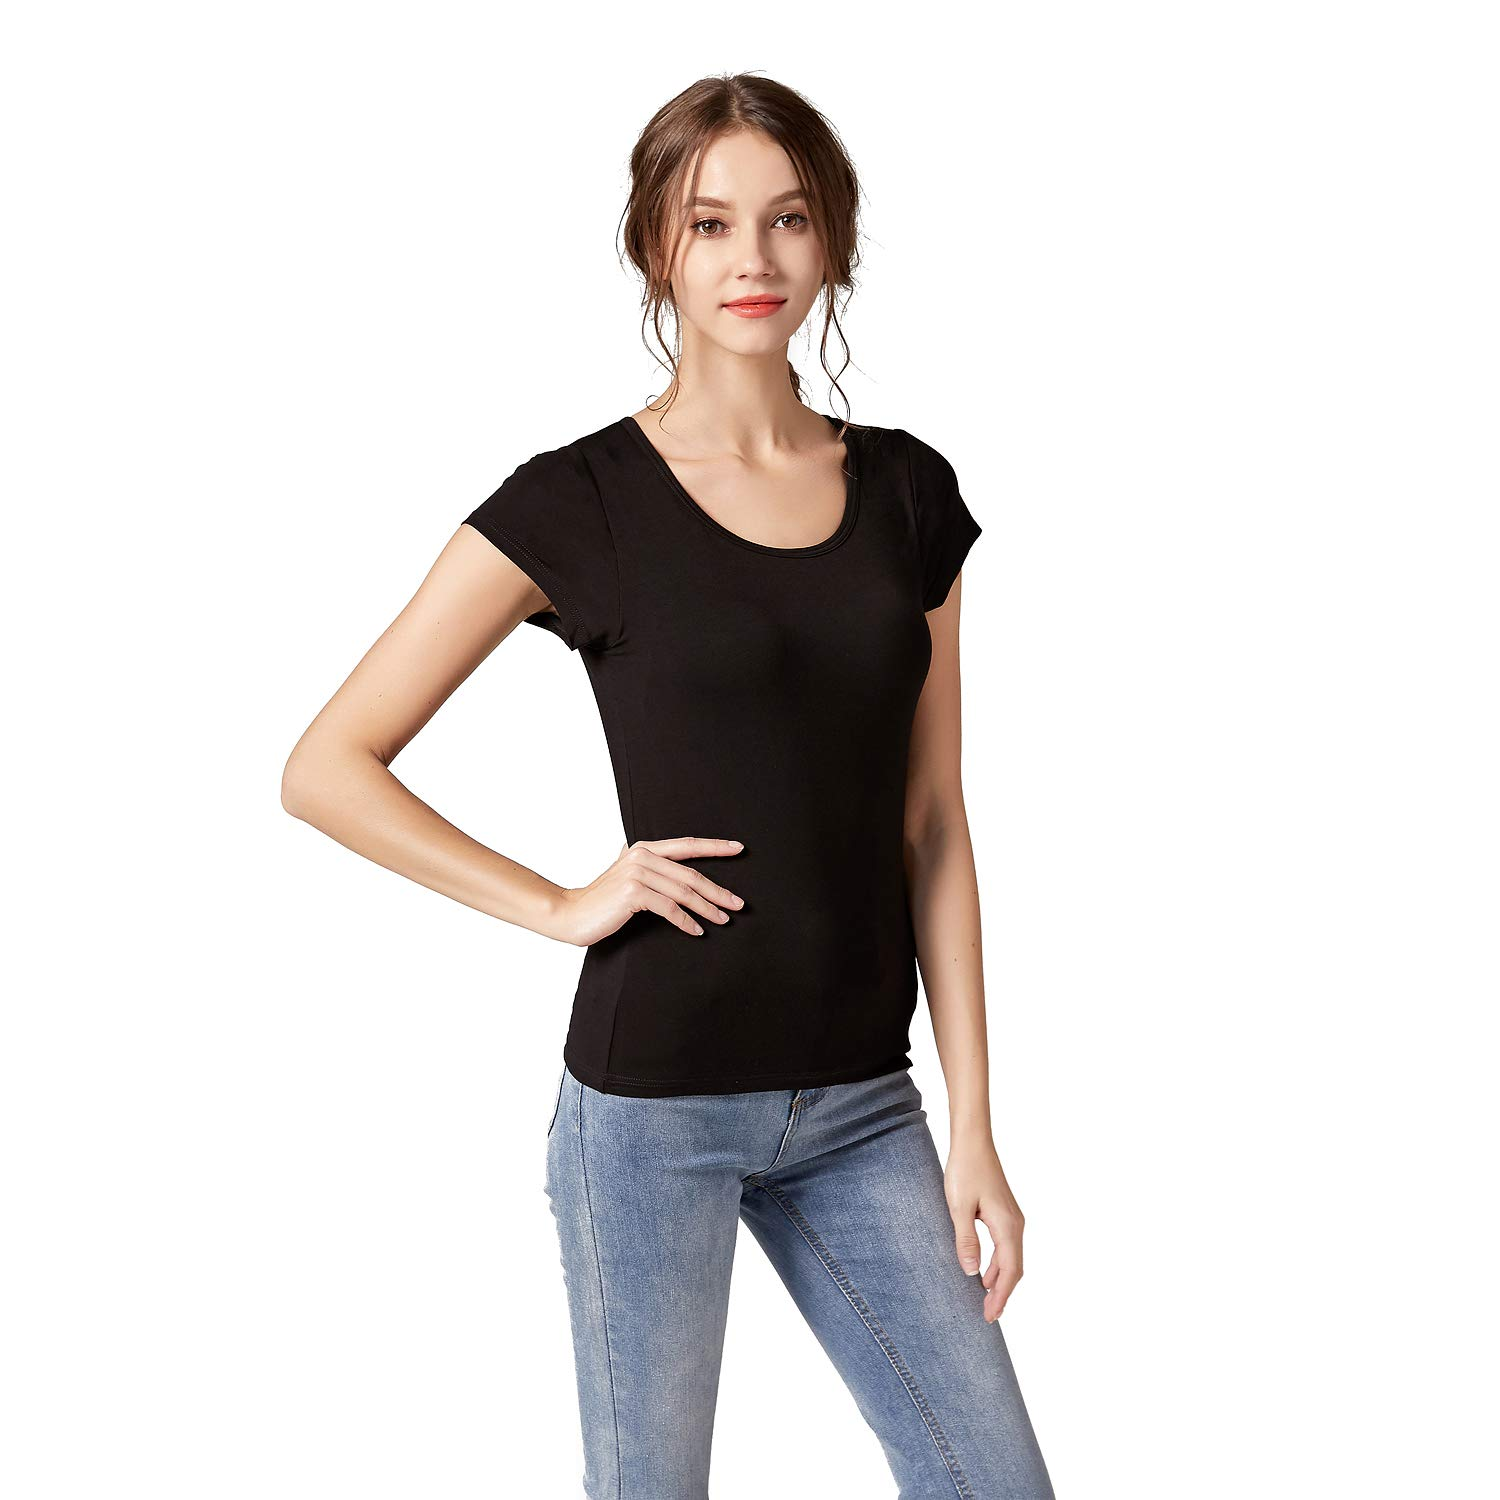 a163cf83bf Amazon.com  KEALLI Scoop Neck Short Sleeve T-Shirt Women Tops with Build in Bra  Tees Underwear  Clothing